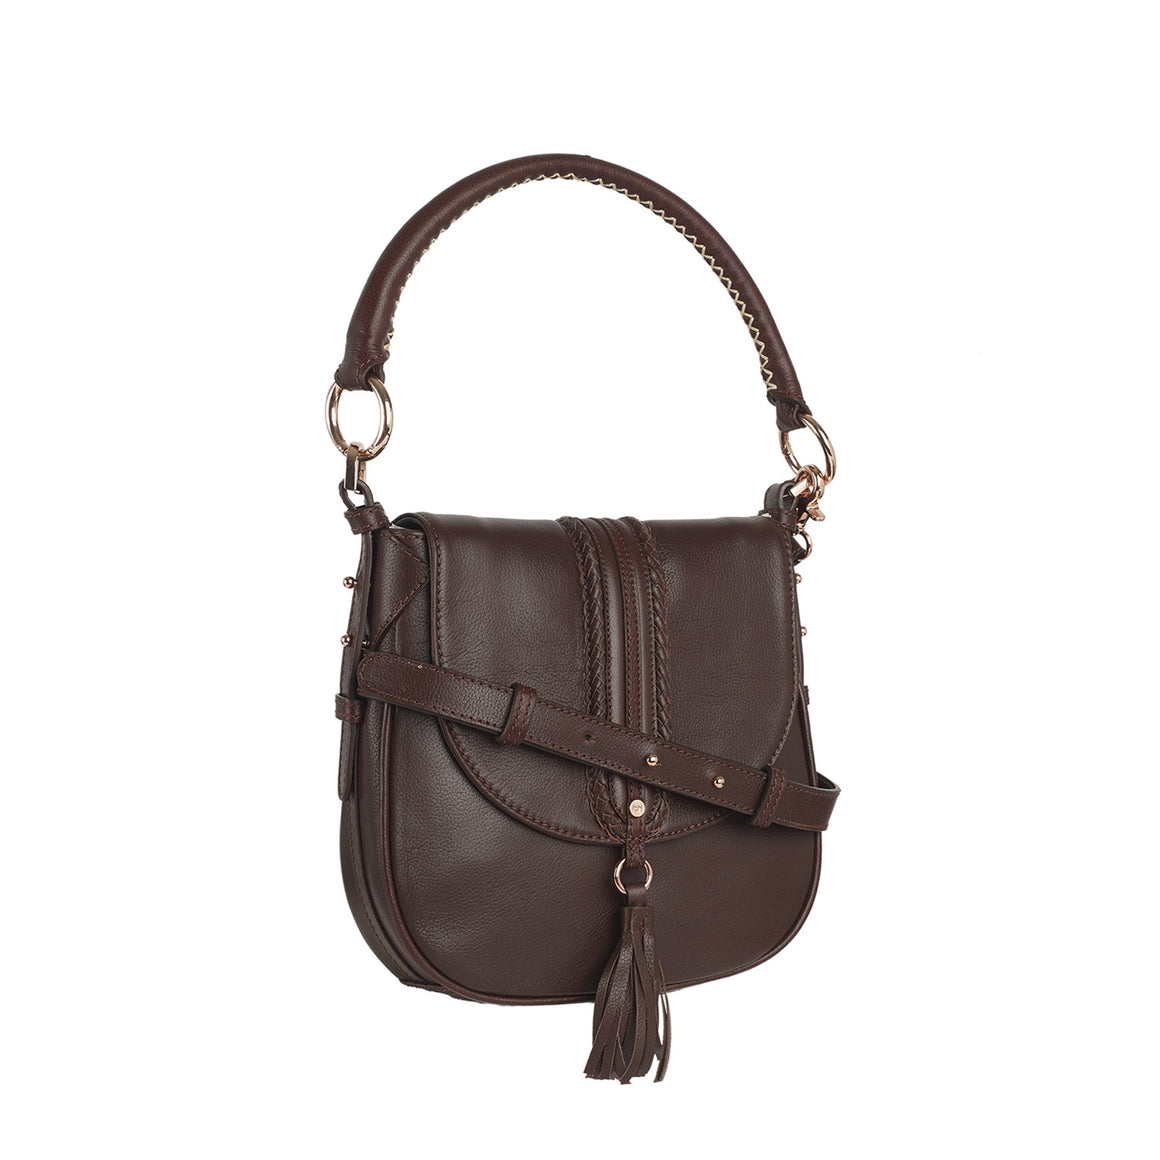 SB 0002 - TOHL GYPSY ROSE WOMEN'S HAND BAG - CHOCO